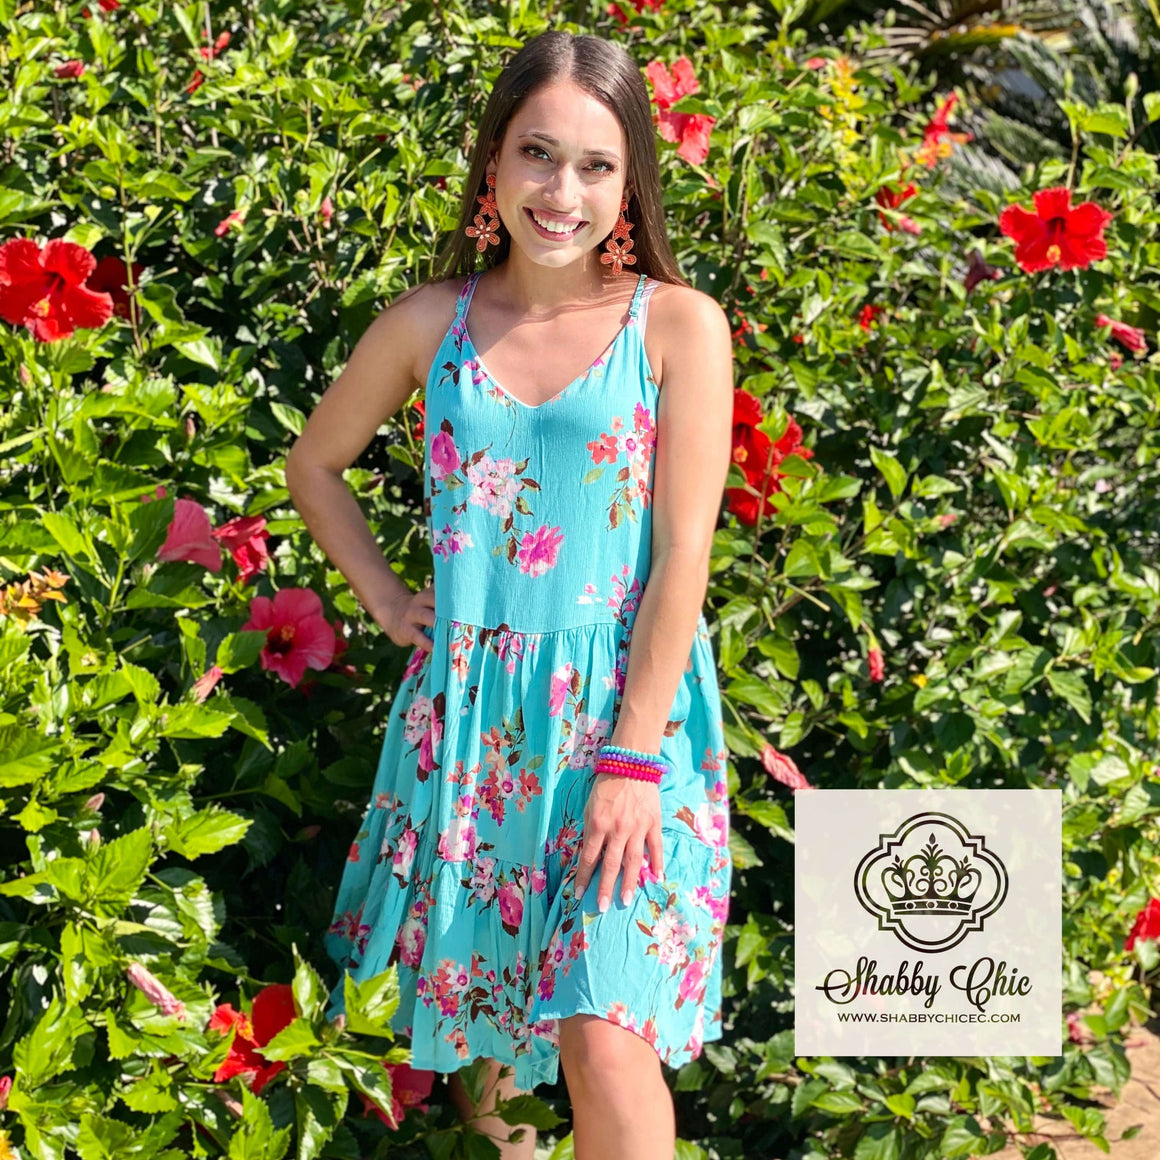 Turquoise Floral Baby Doll Dress Shabby Chic Boutique and Tanning Salon